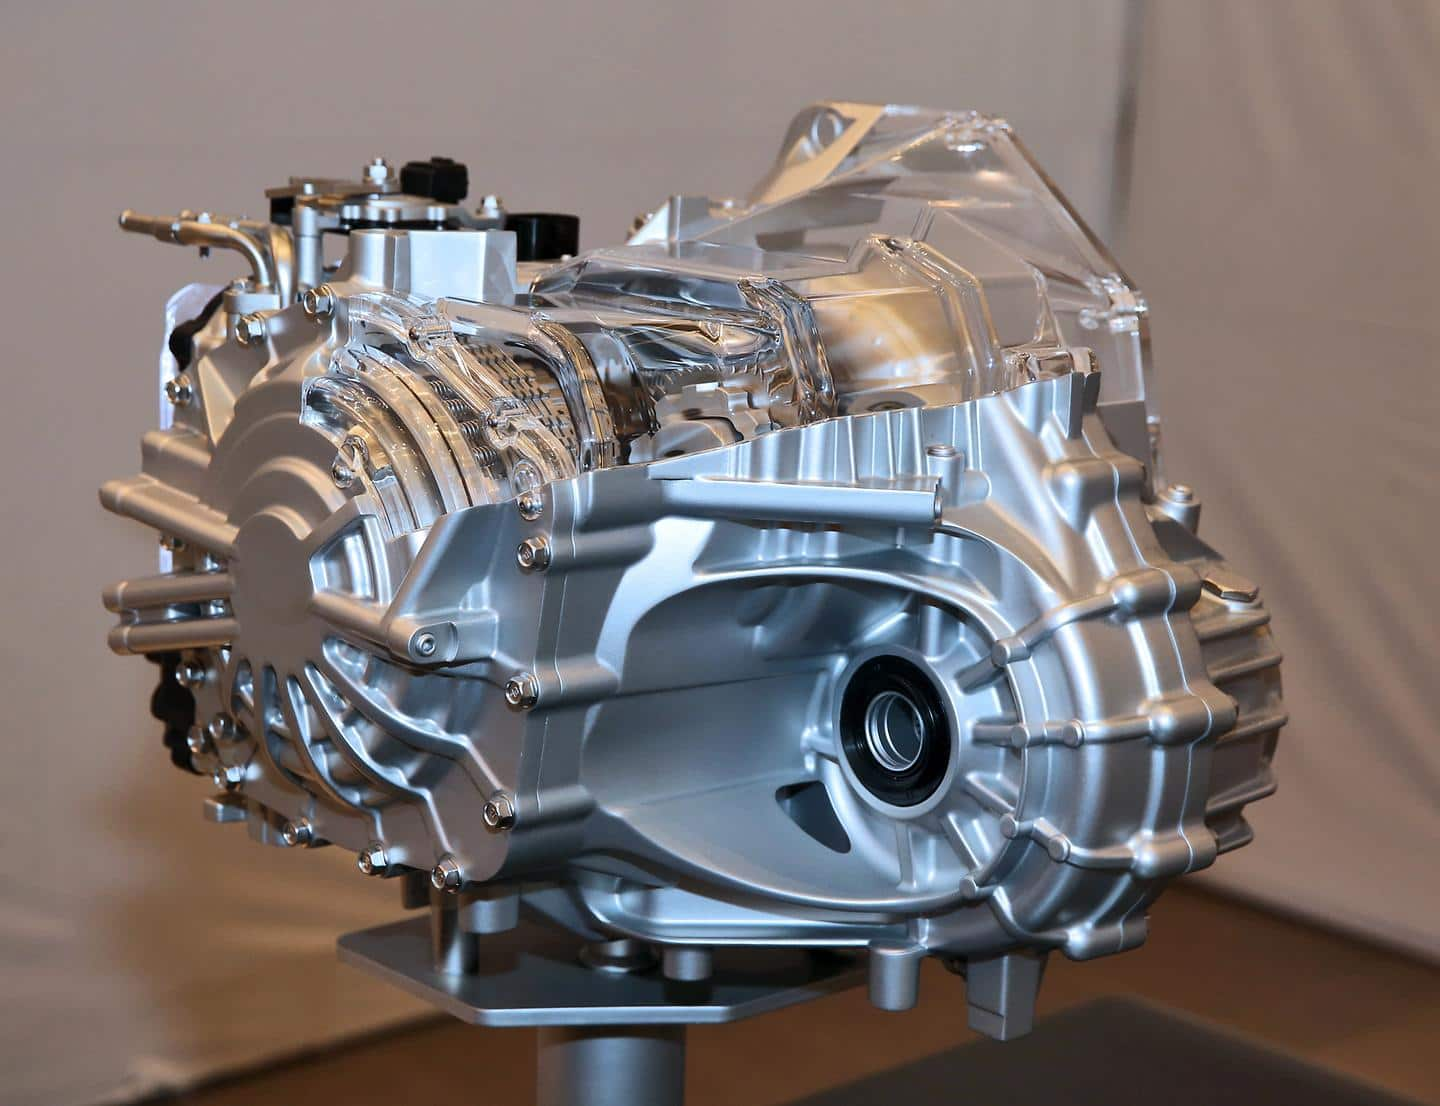 Hyundai Motor Unveils New Hybrid Dedicated GDI Engine and Front-Wheel Drive 8-speed Automatic Transmission